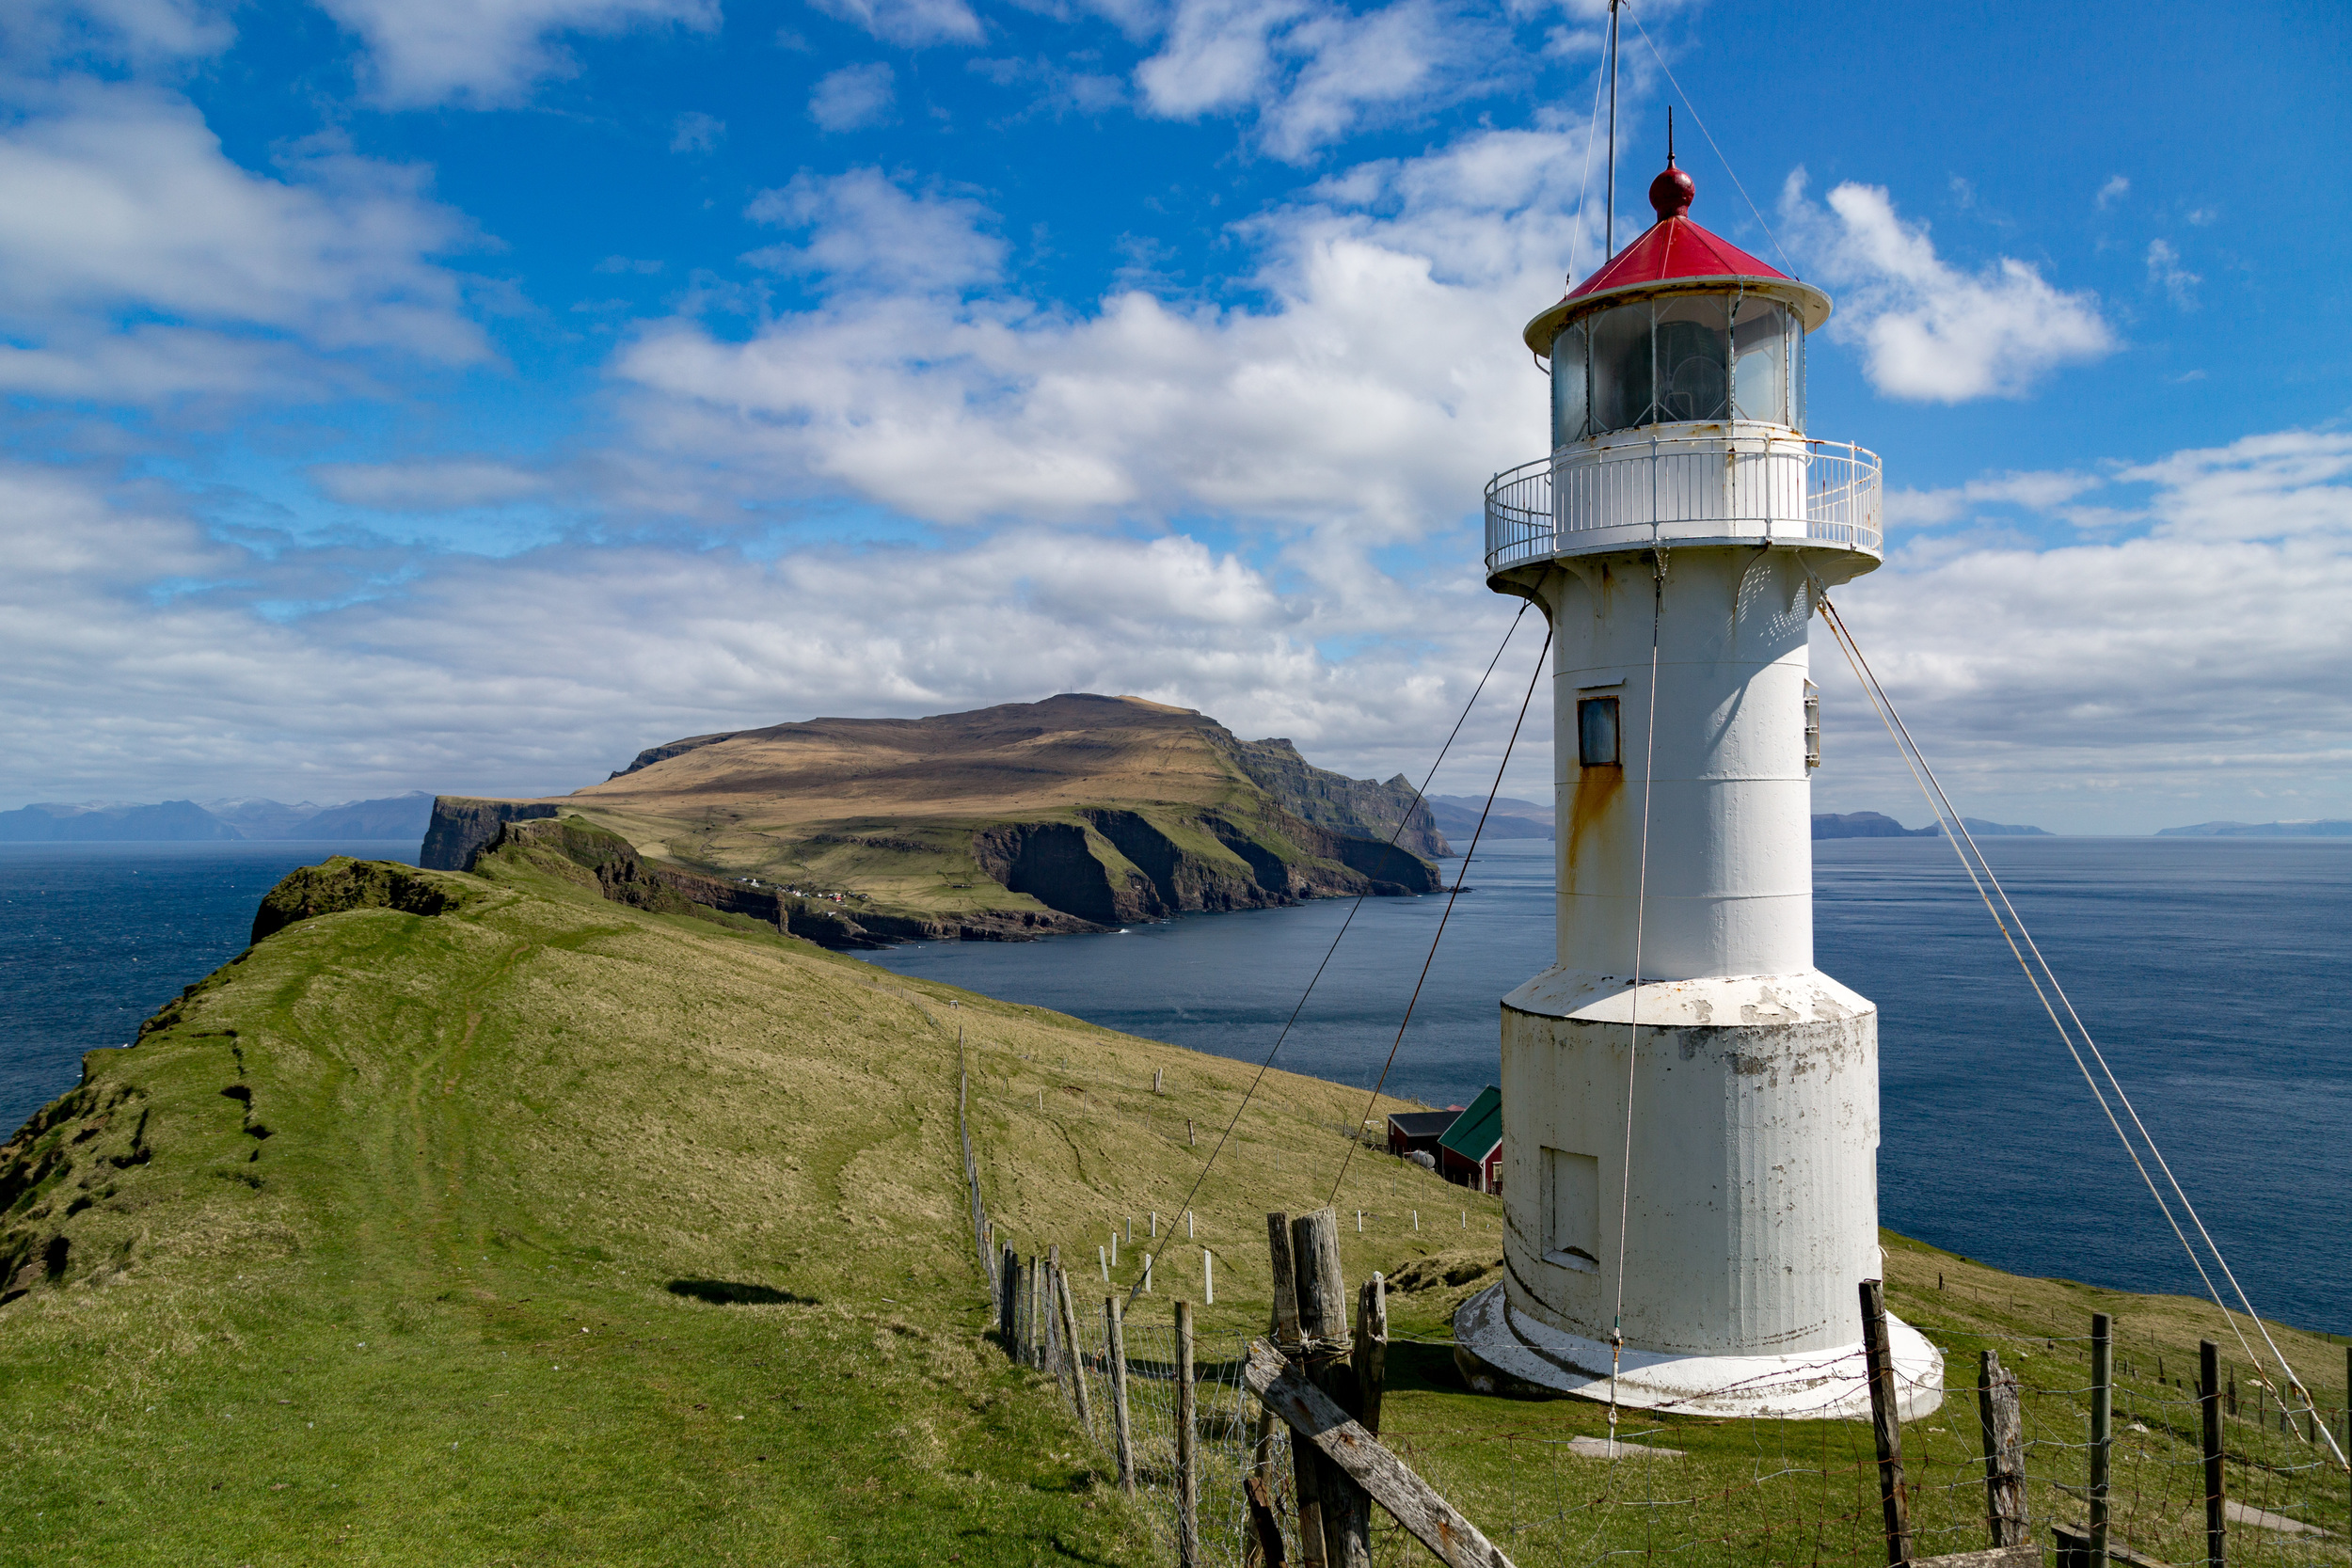 The Lighthouse near the Western End of Mykines. It served as an observation point, alerting the British troops on the island during World War II to the presence of German Ships.